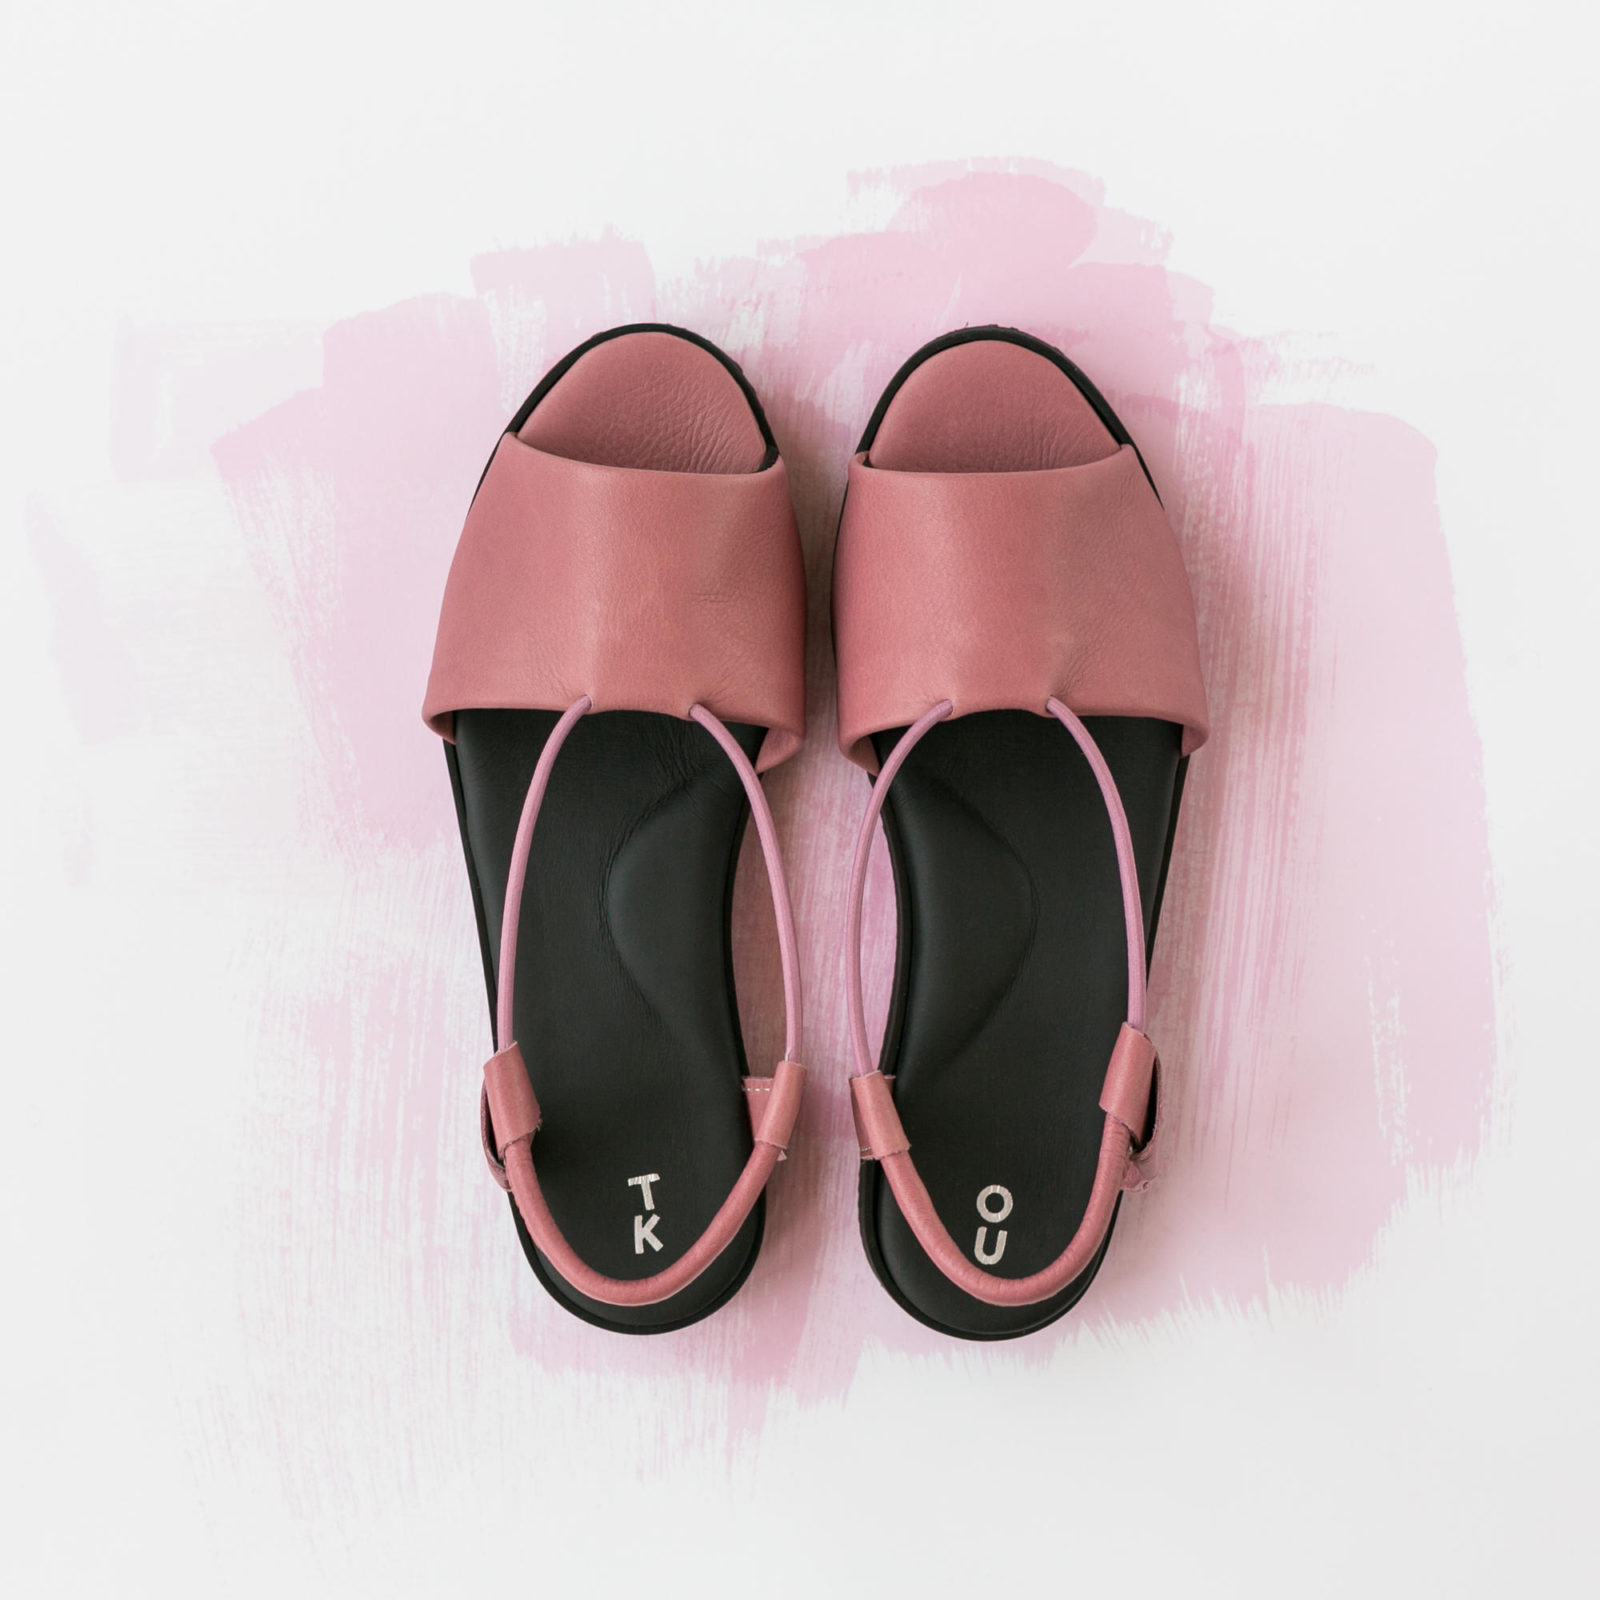 pink comfortable leather shoes